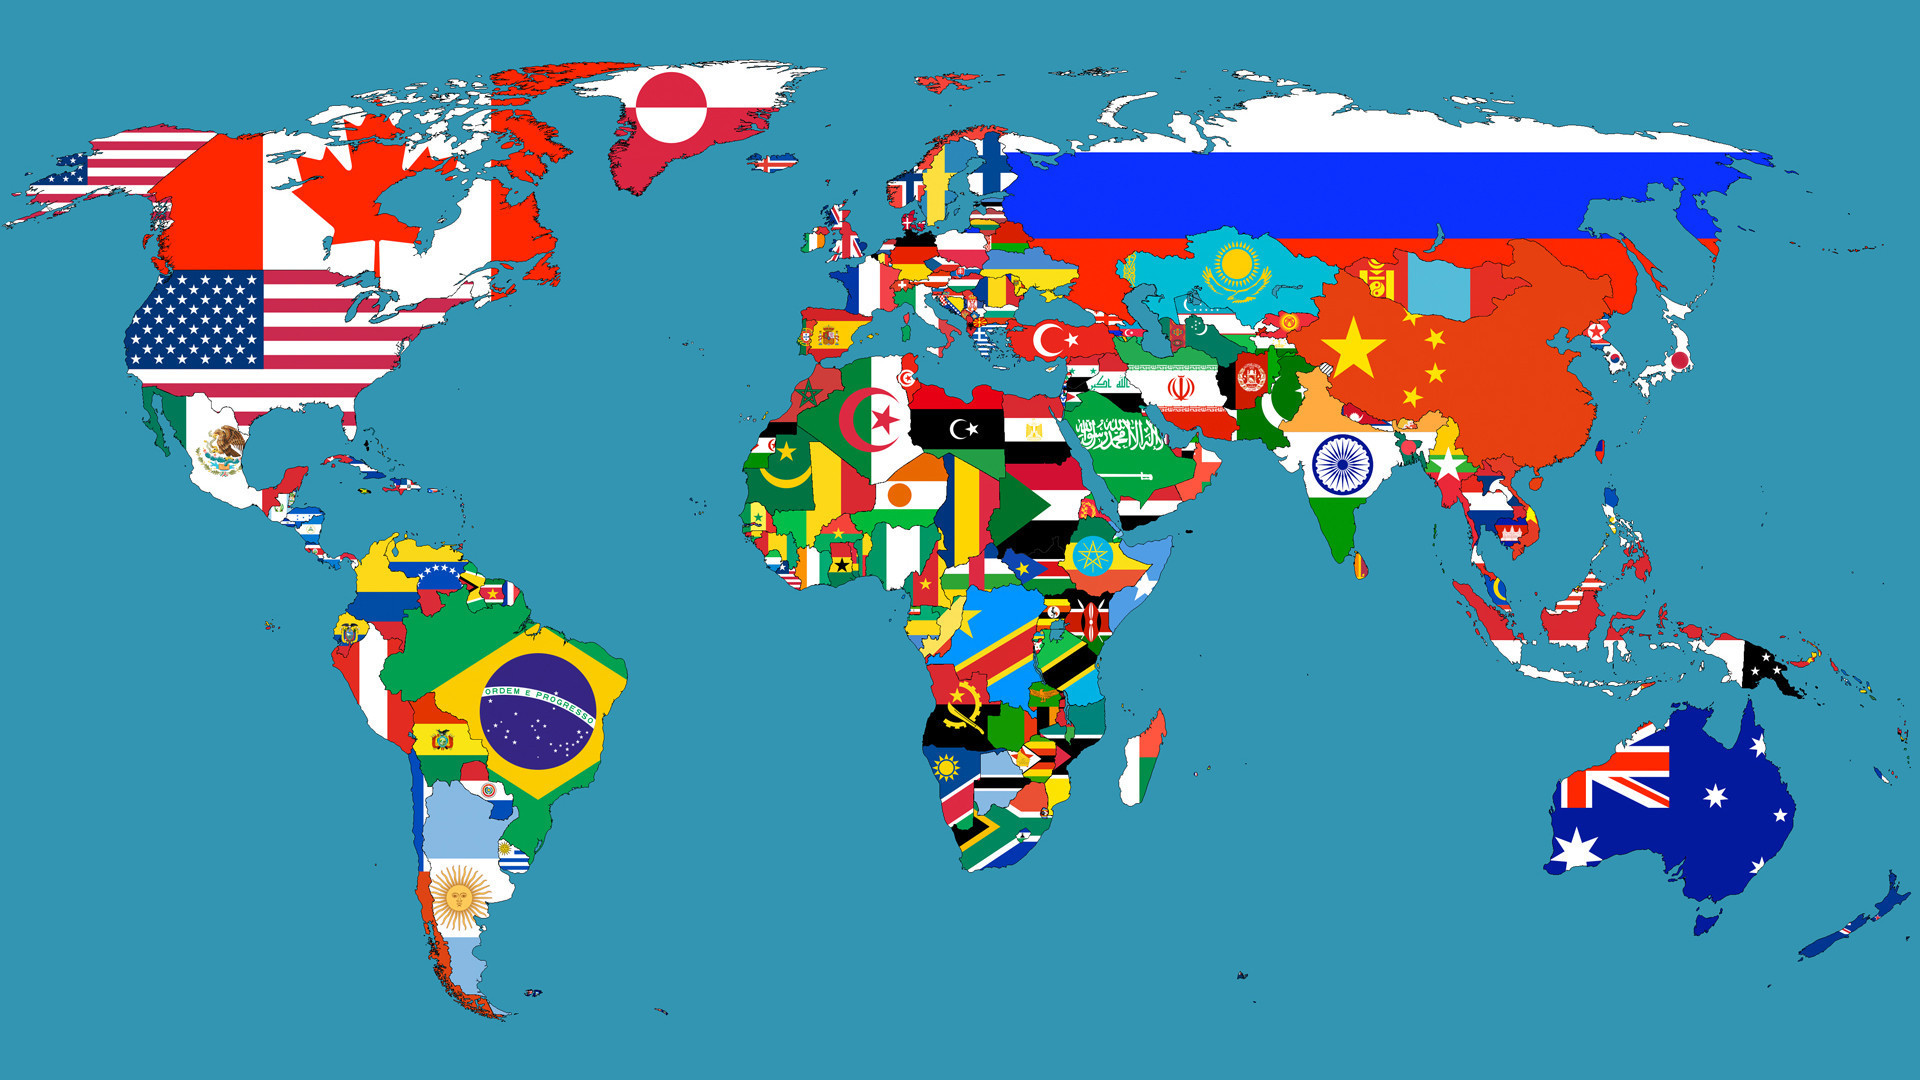 World map wallpapers high resolution 66 background pictures 1920x1080 desktop world map high resolution afari with quality pictures of hd wallpaper 1366768 gumiabroncs Choice Image